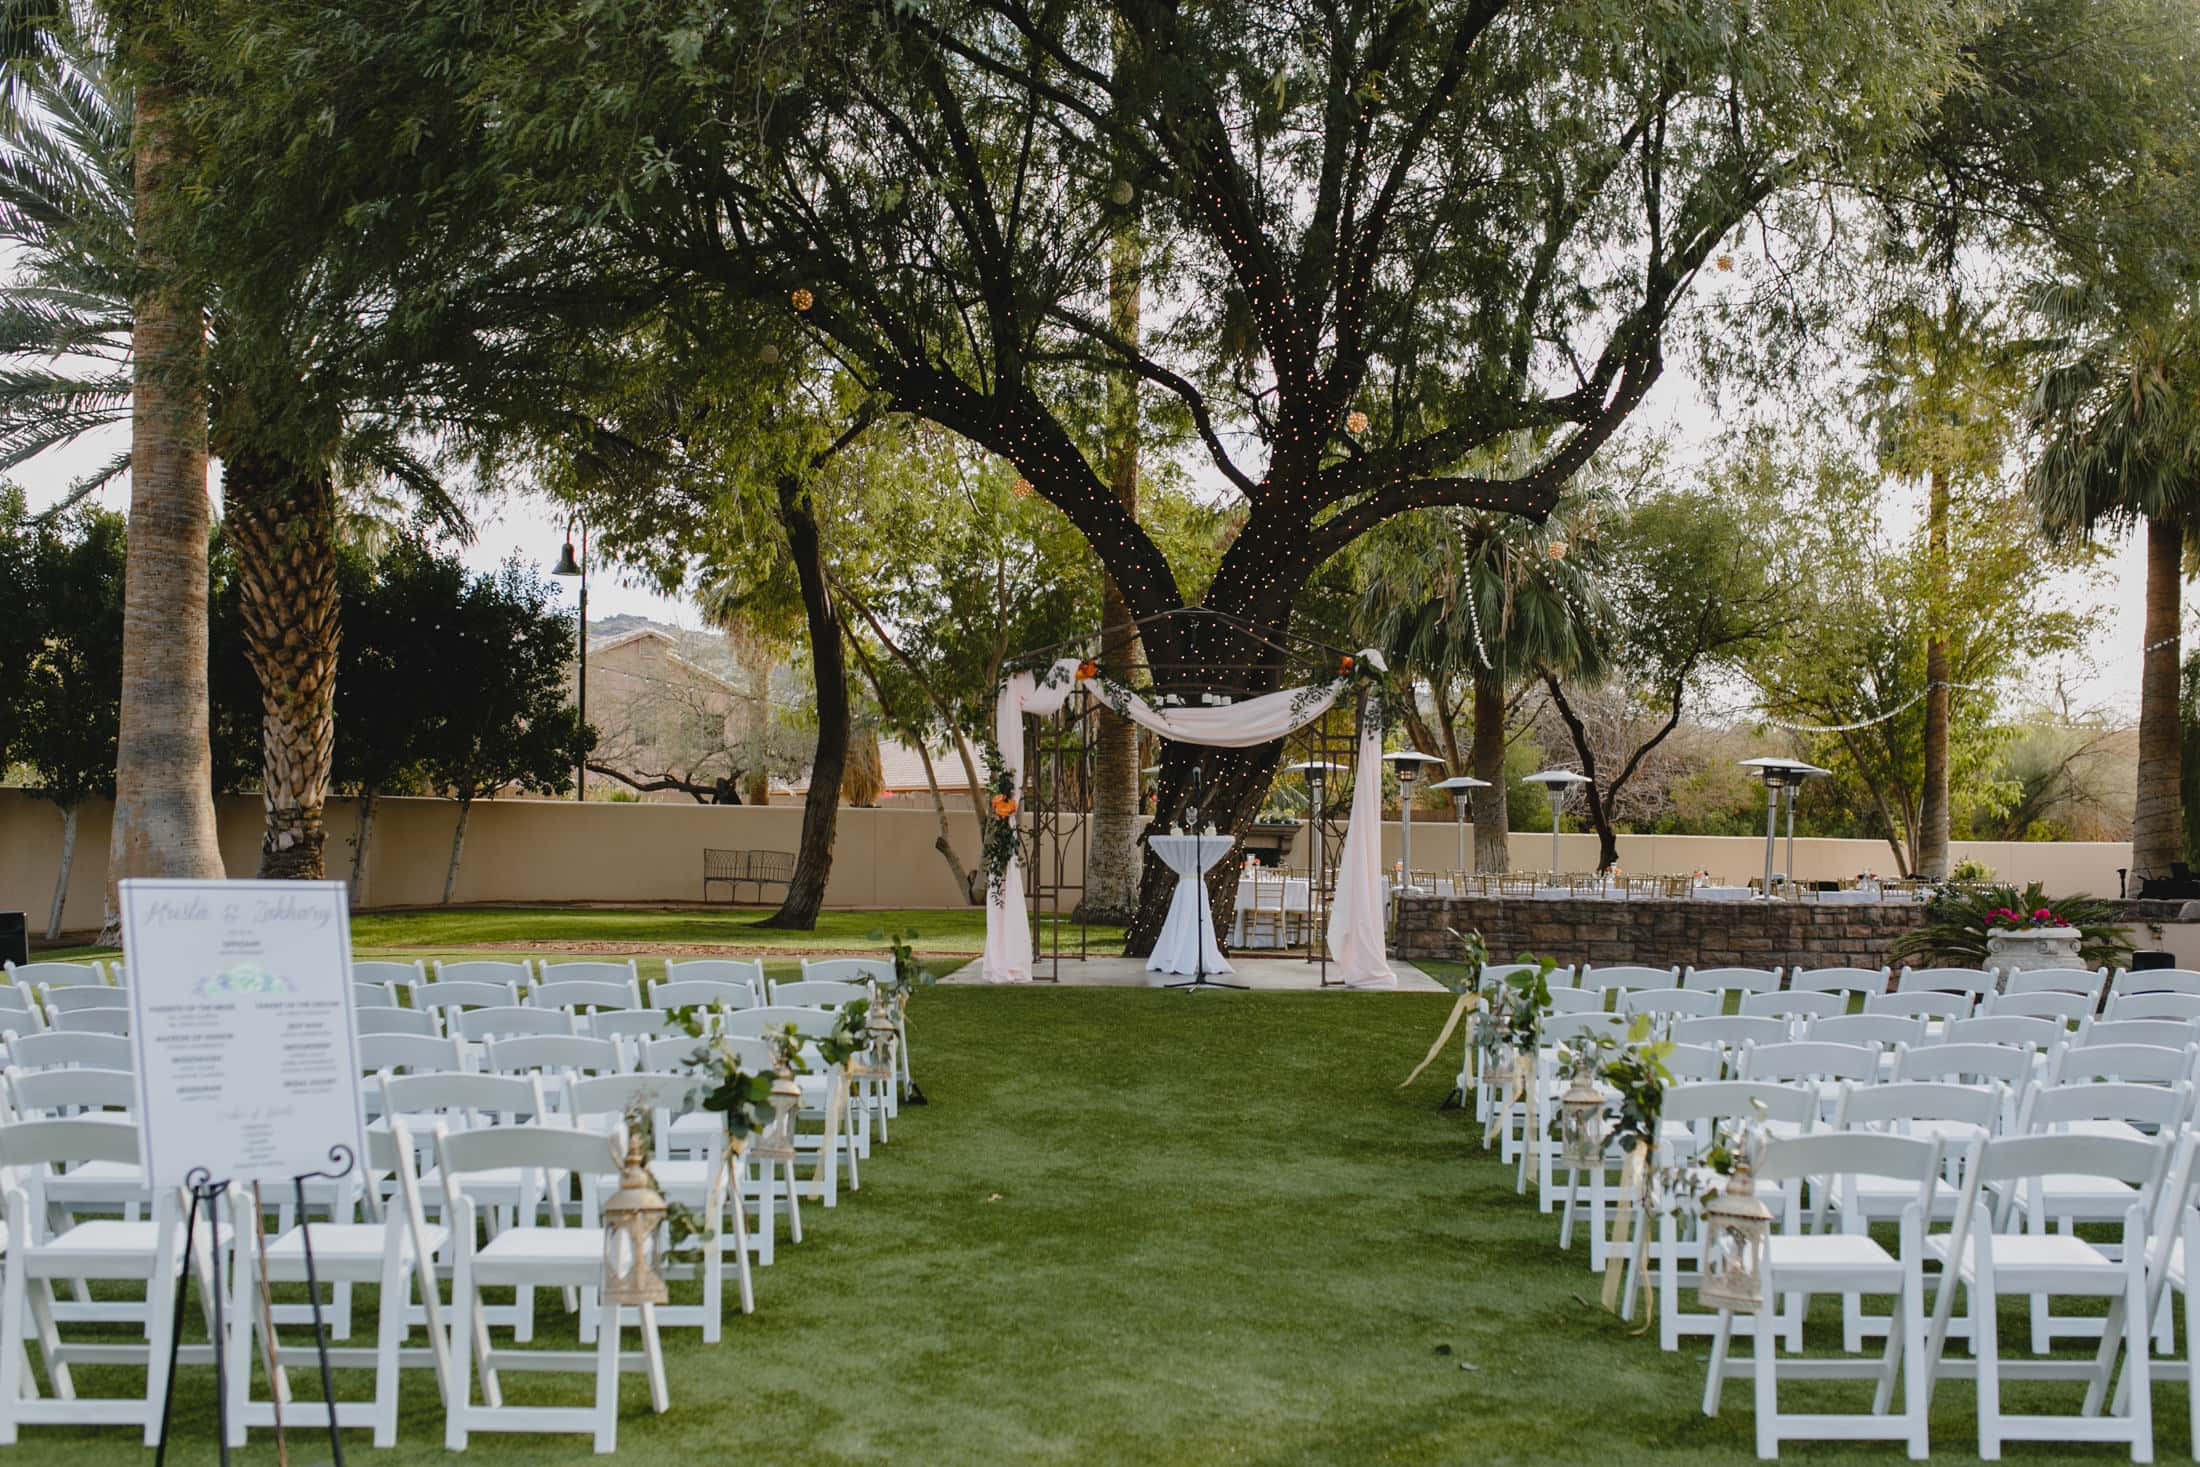 Secret Garden Arizona wedding ceremony space with large trees